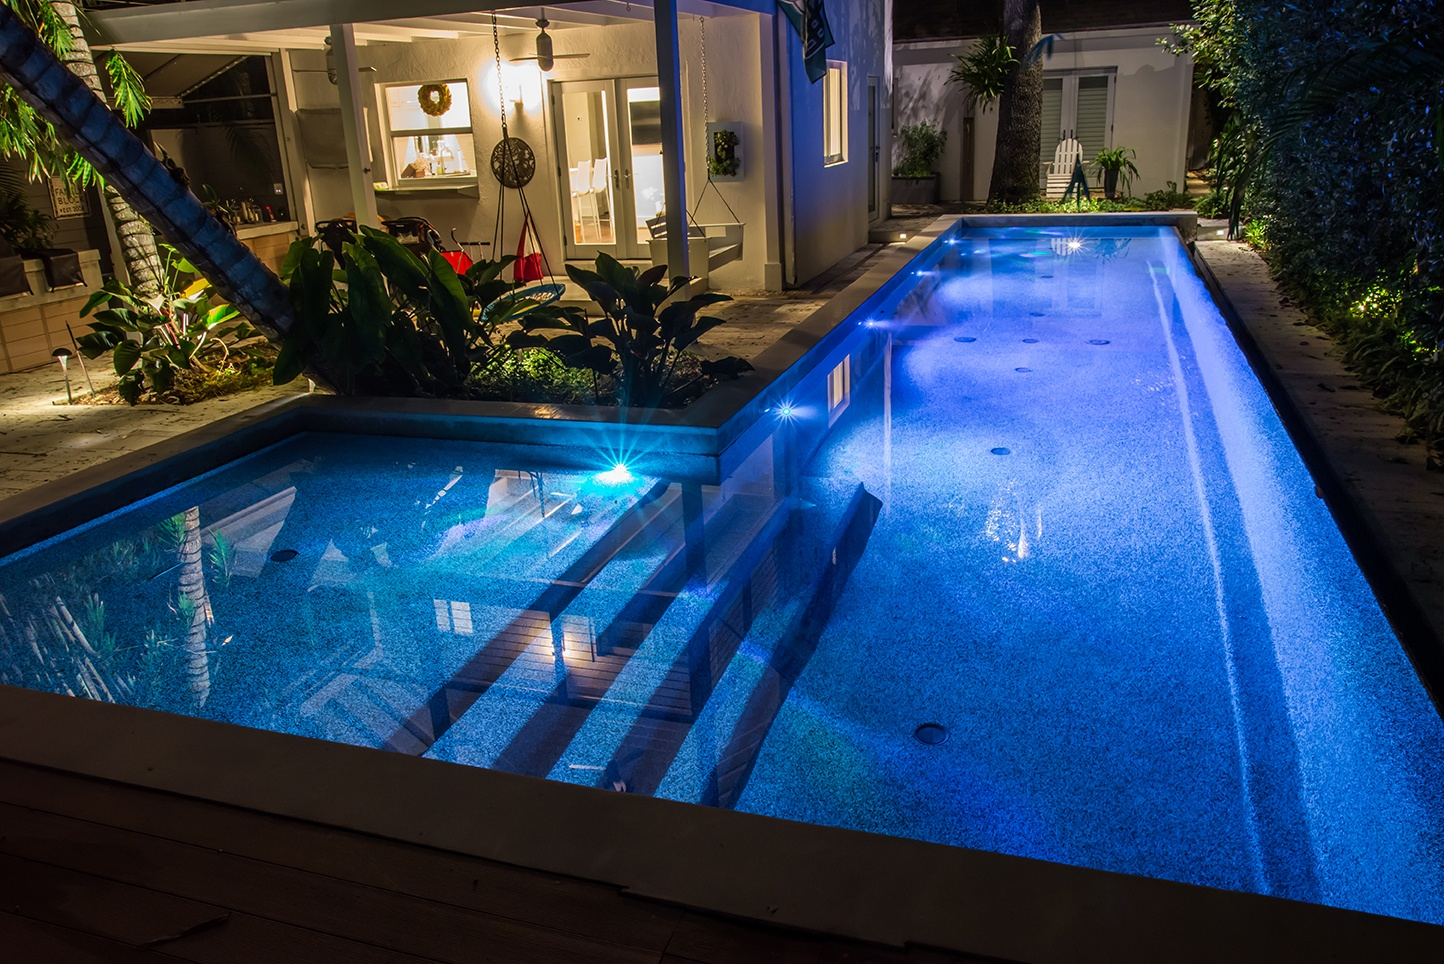 Pool lighting and poolside pathway lighting